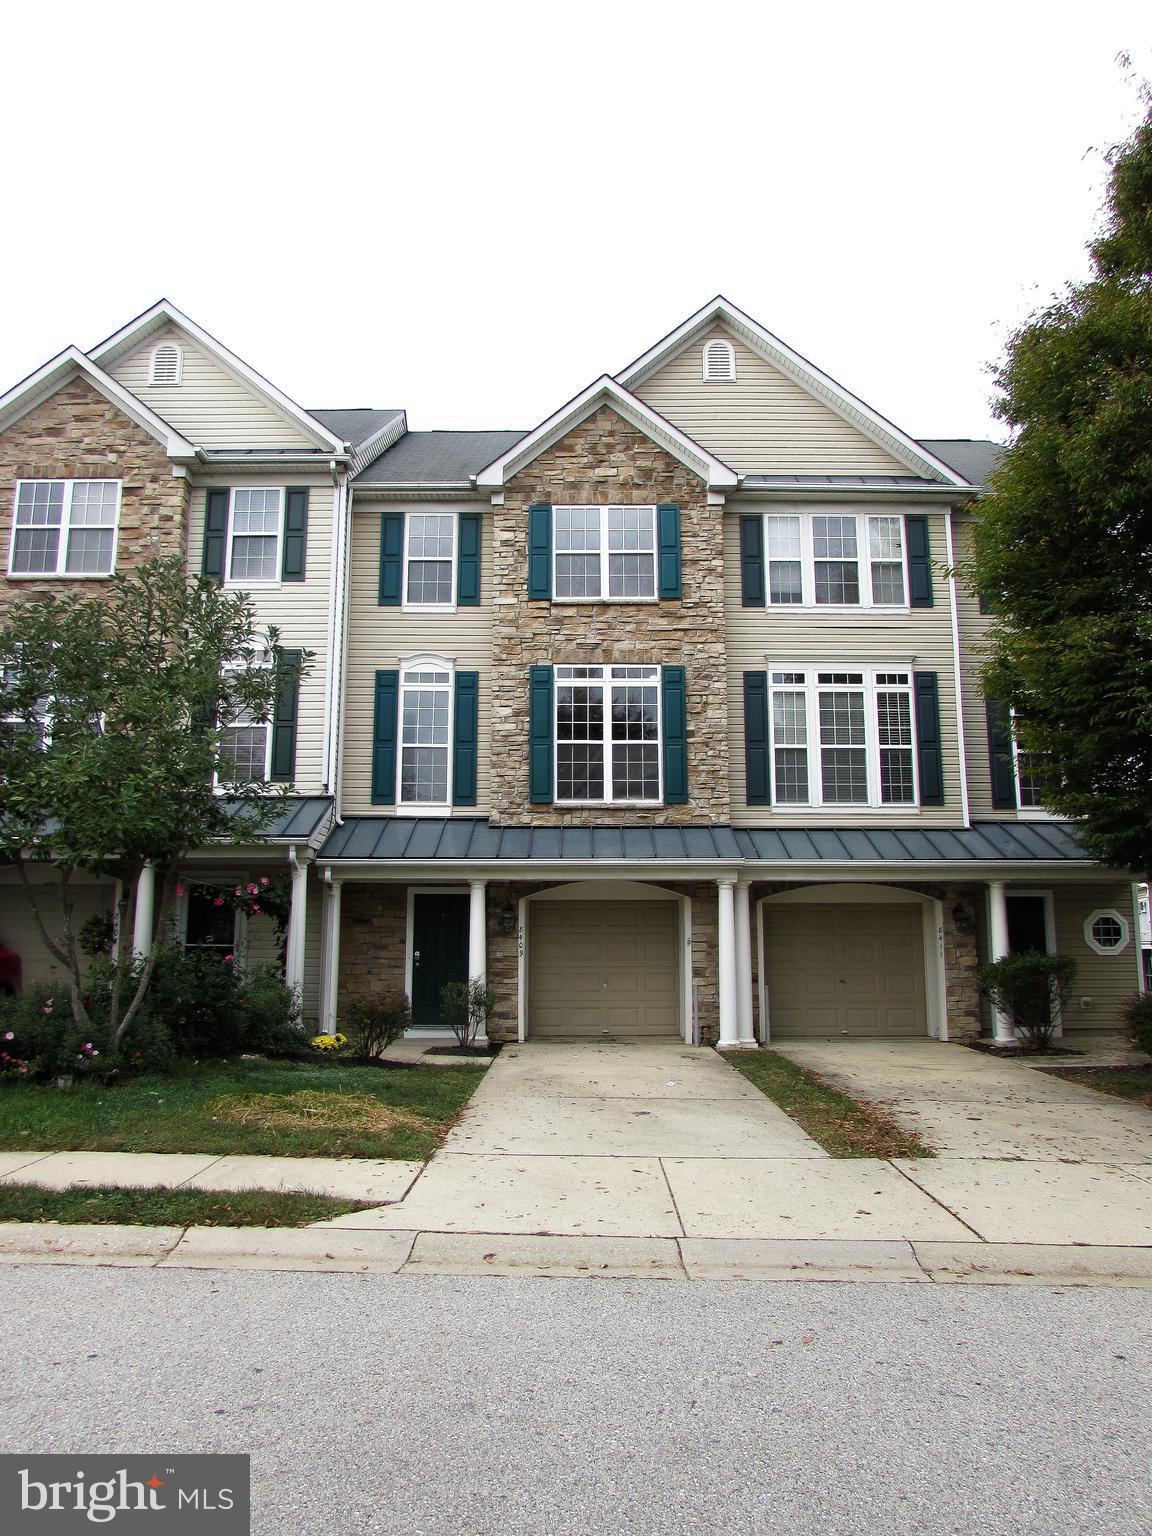 Just Remodeled - Columbia Builders 3-Level Garage Townhome in Sought After Emerson Community. 3BR's,